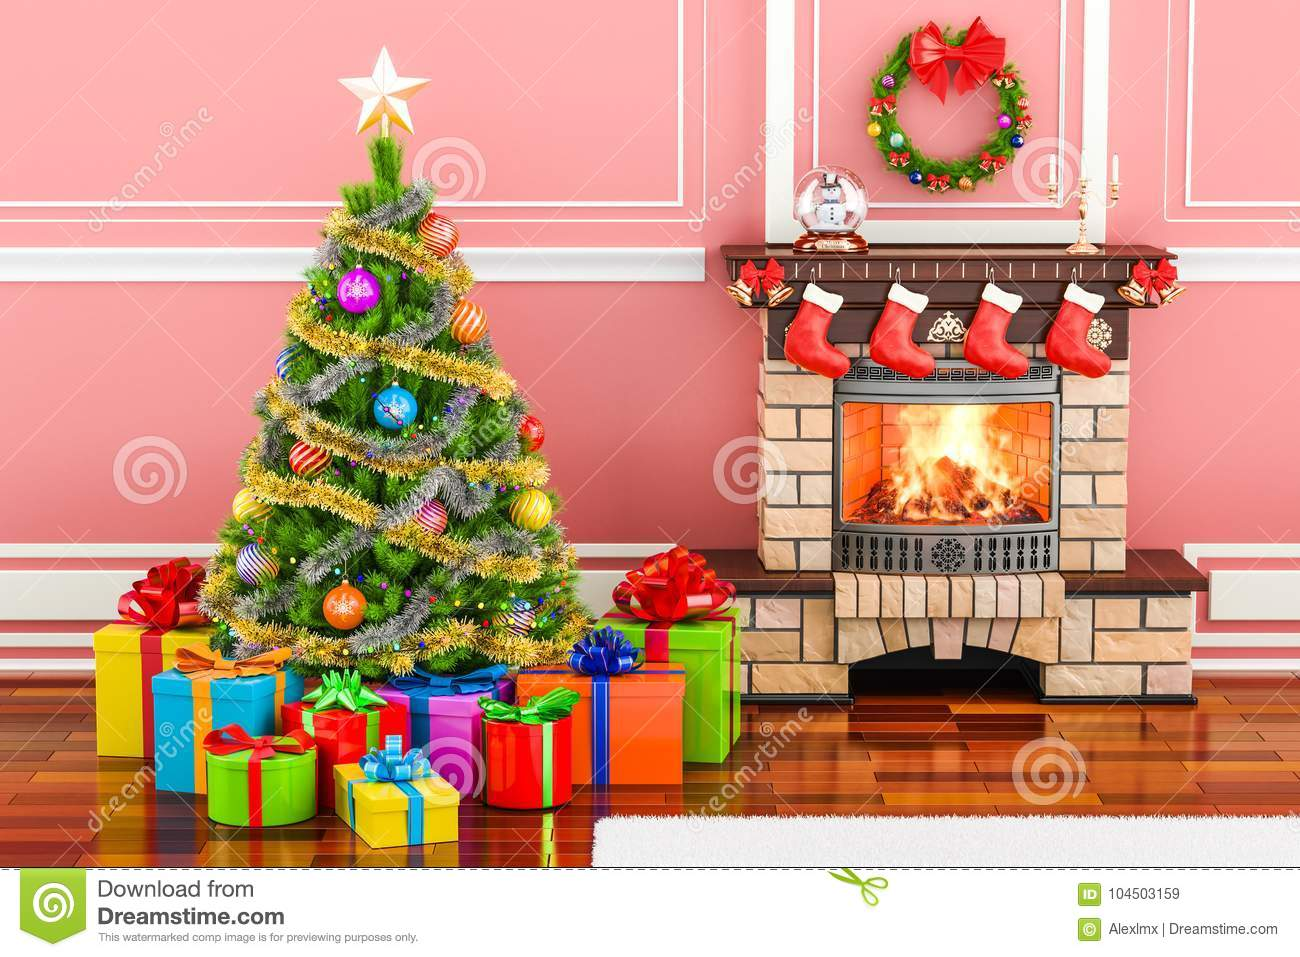 Christmas interior with fireplace, Christmas tree and gift boxes